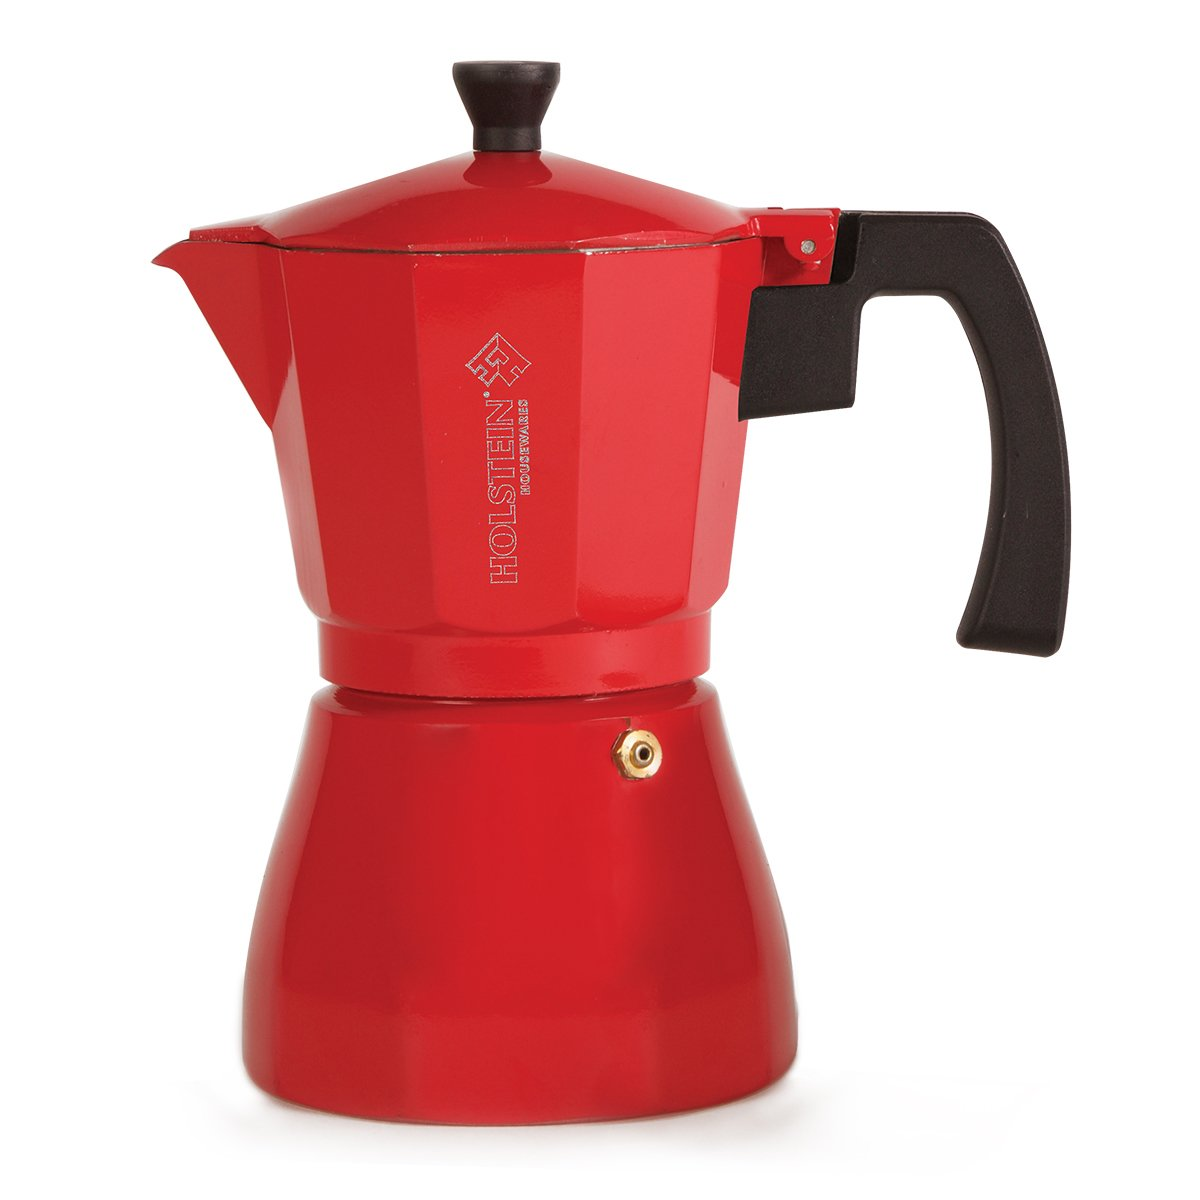 Holstein Housewares H-08081 6-Cup Aluminum Espresso Maker - Red